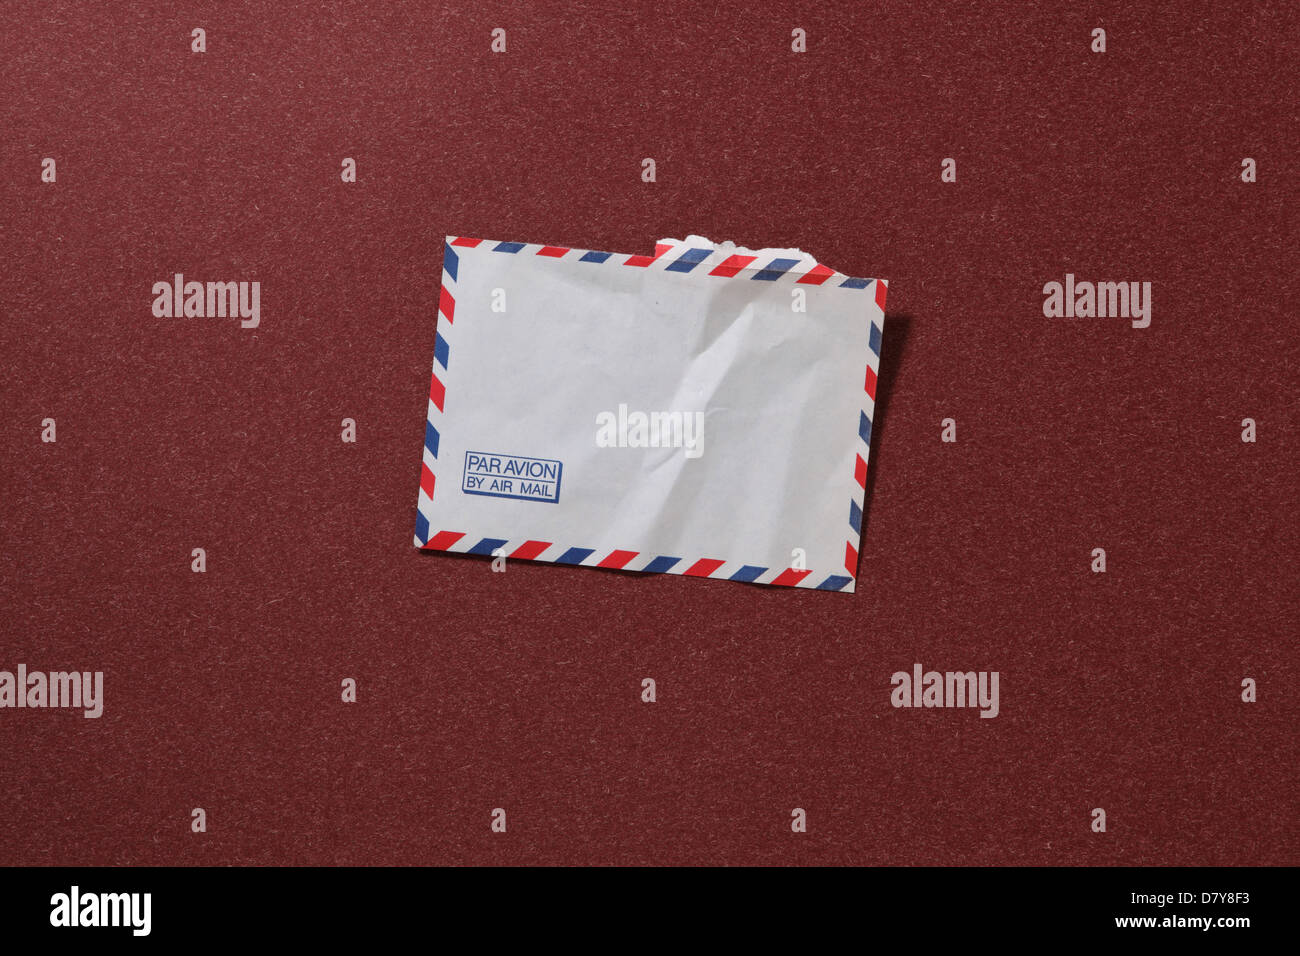 An air mail envelope slightly worn and torn. - Stock Image